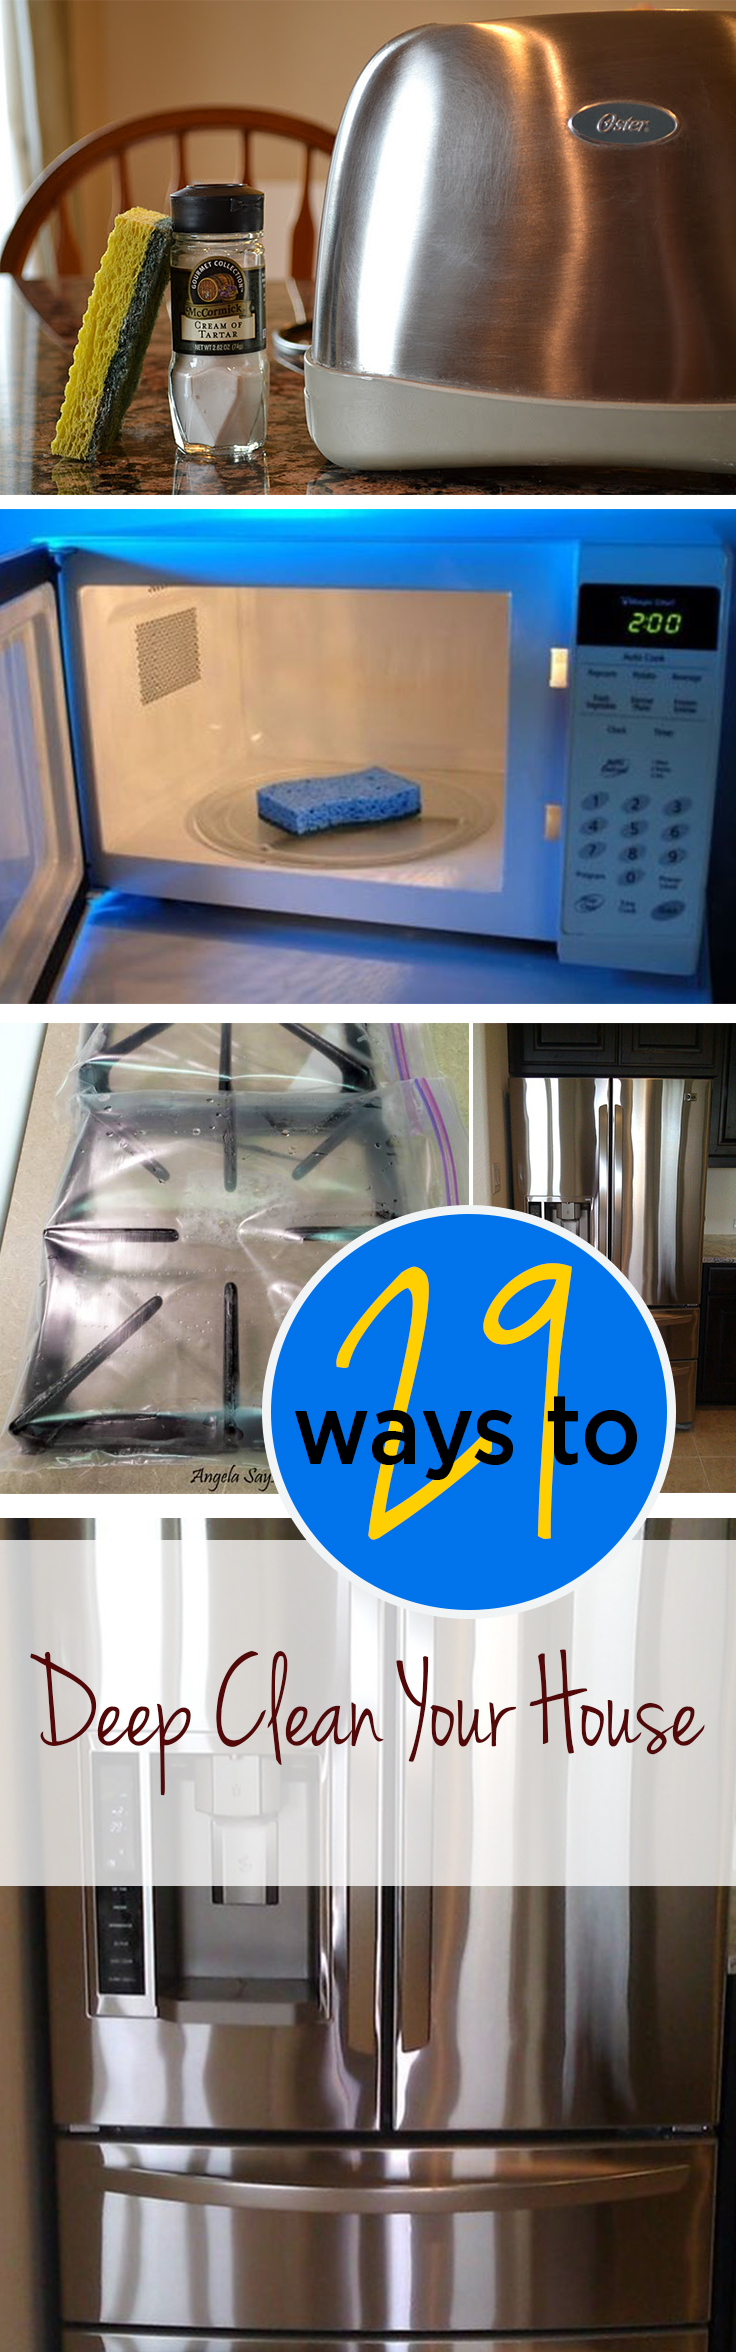 29 Ways To Deep Clean Your Home Wrapped In Rust